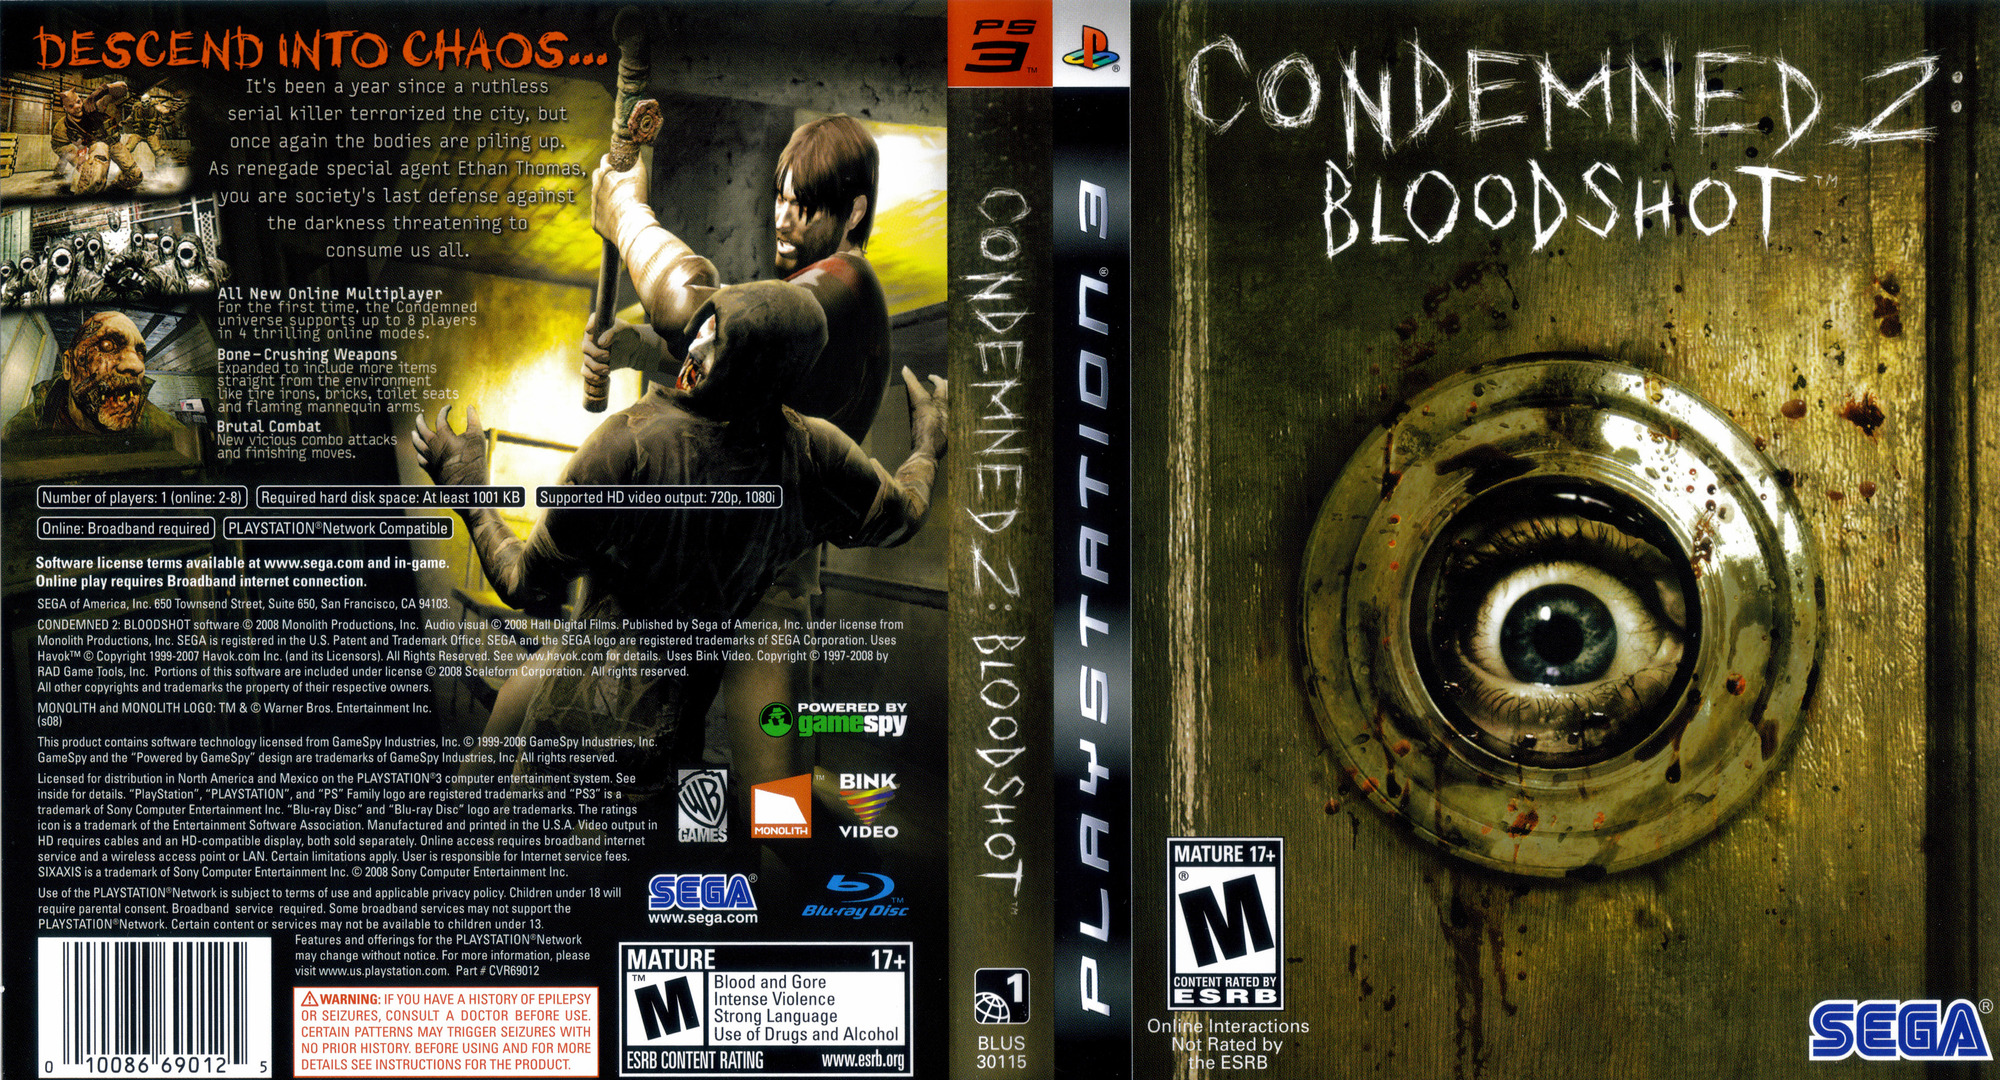 Condemned 2: Bloodshot PS3 coverfullHQ (BLUS30115)